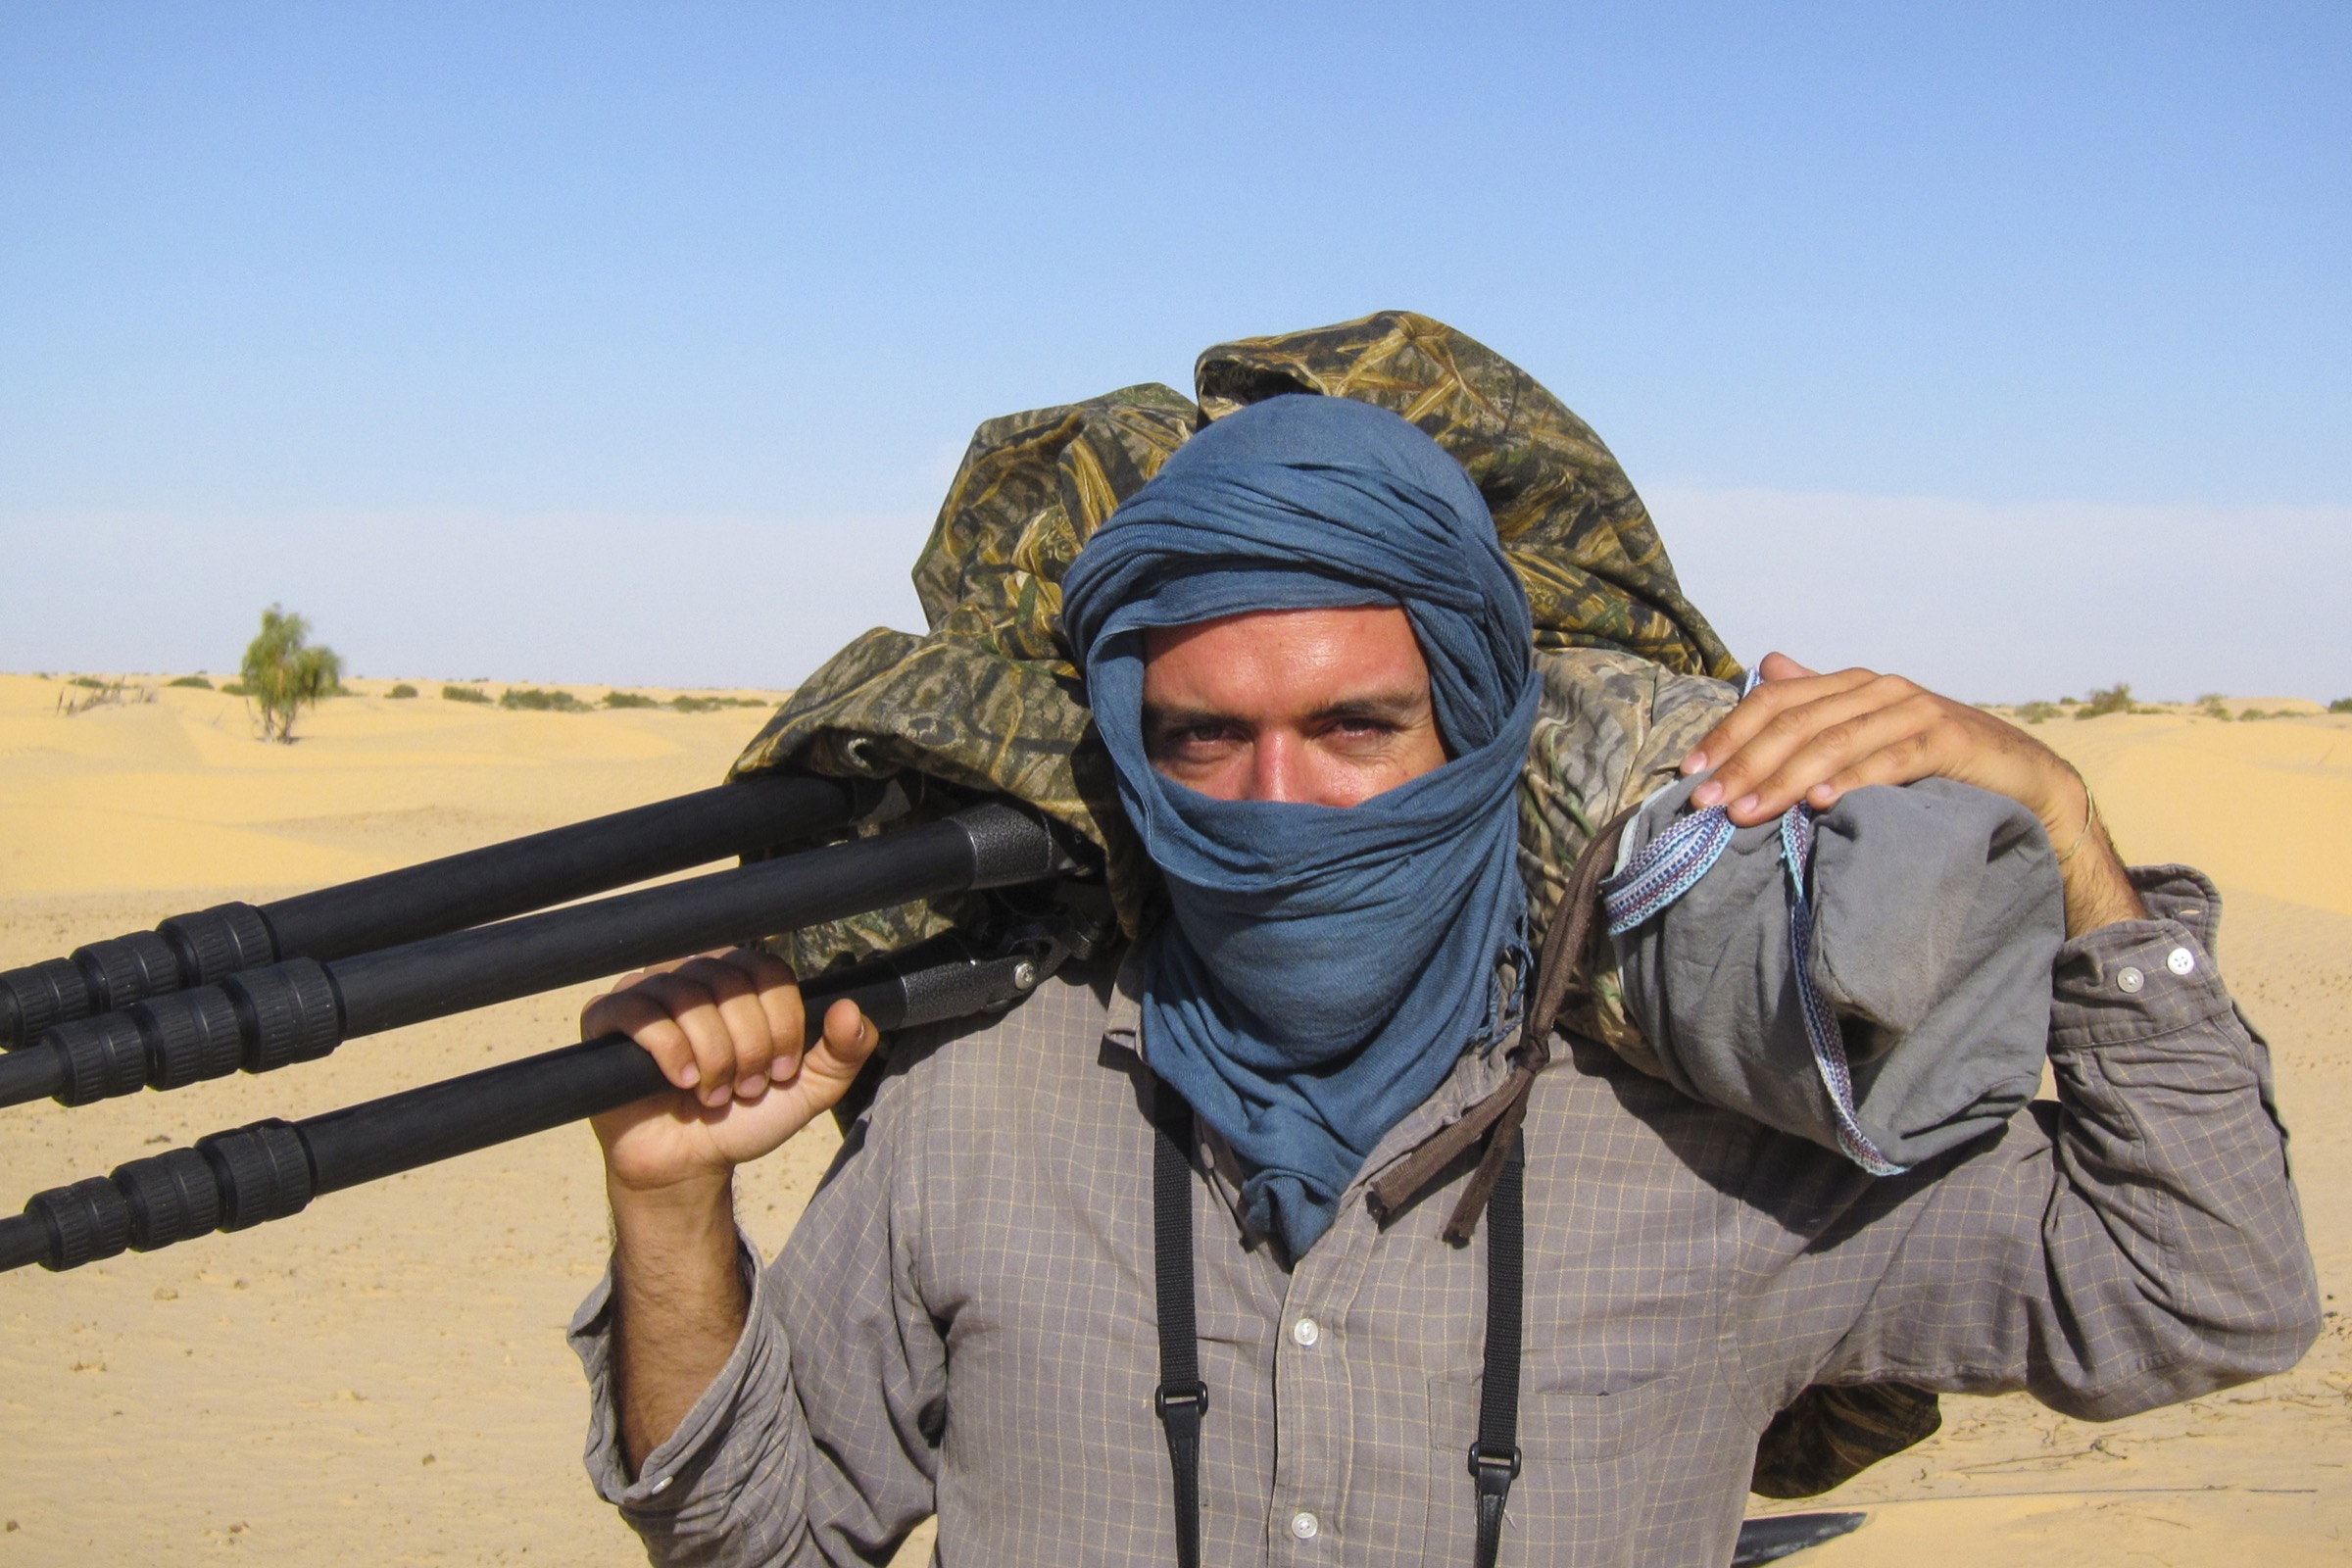 To protect his camera gear from the sand while working in the Tunisian Sahara, D'Amicis relied on damp towels and multiple layers of Ziplock bags.